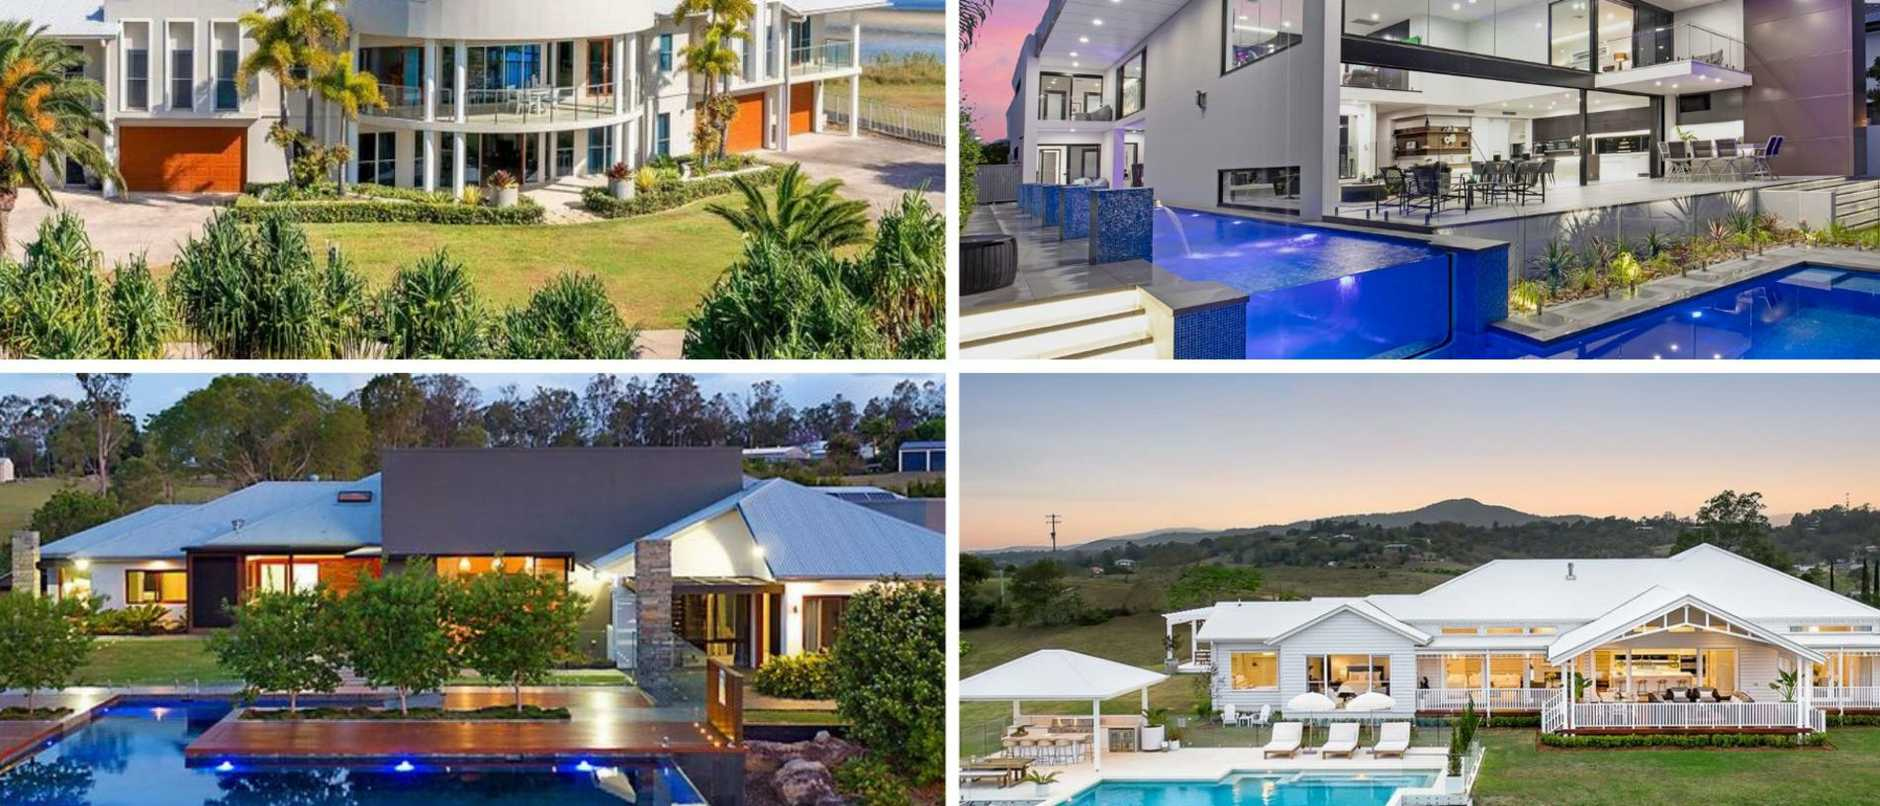 Decked out with resort-style swimming pools, cinemas and ocean views some of fanciest homes on the market.